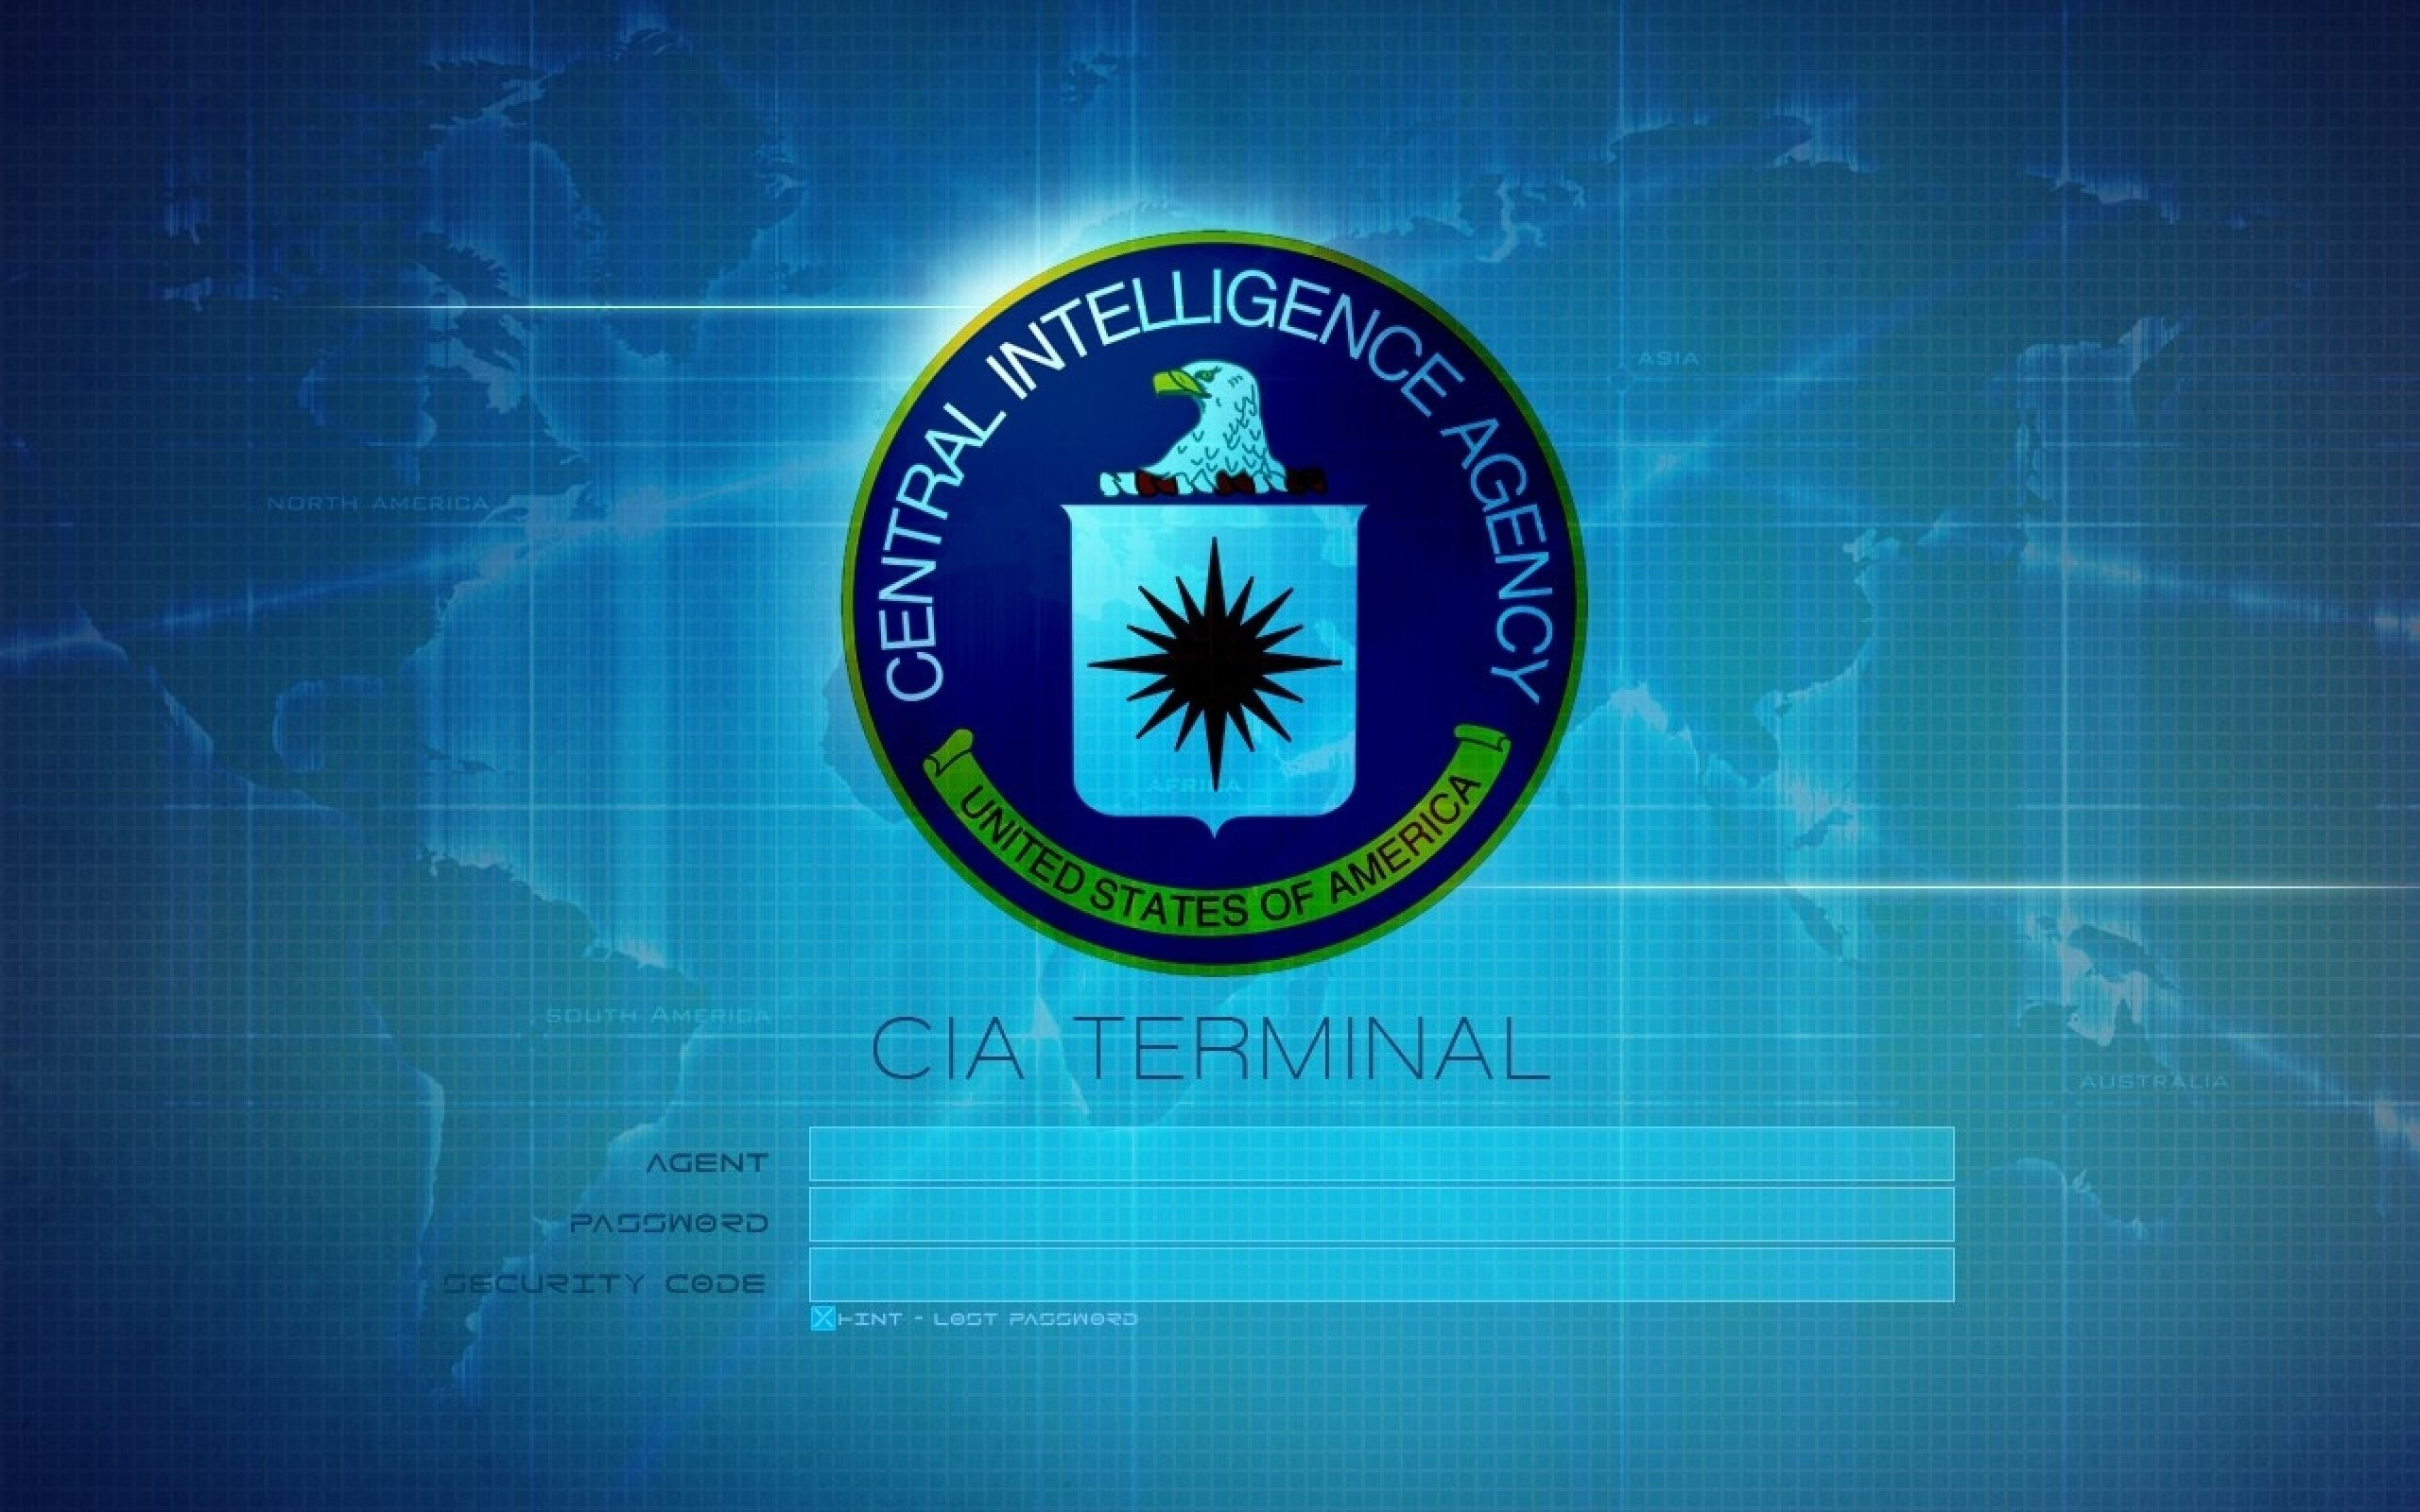 2560x1600  CIA Central Intelligence Agency crime usa america spy logo  wallpaper |  | 421704 | WallpaperUP